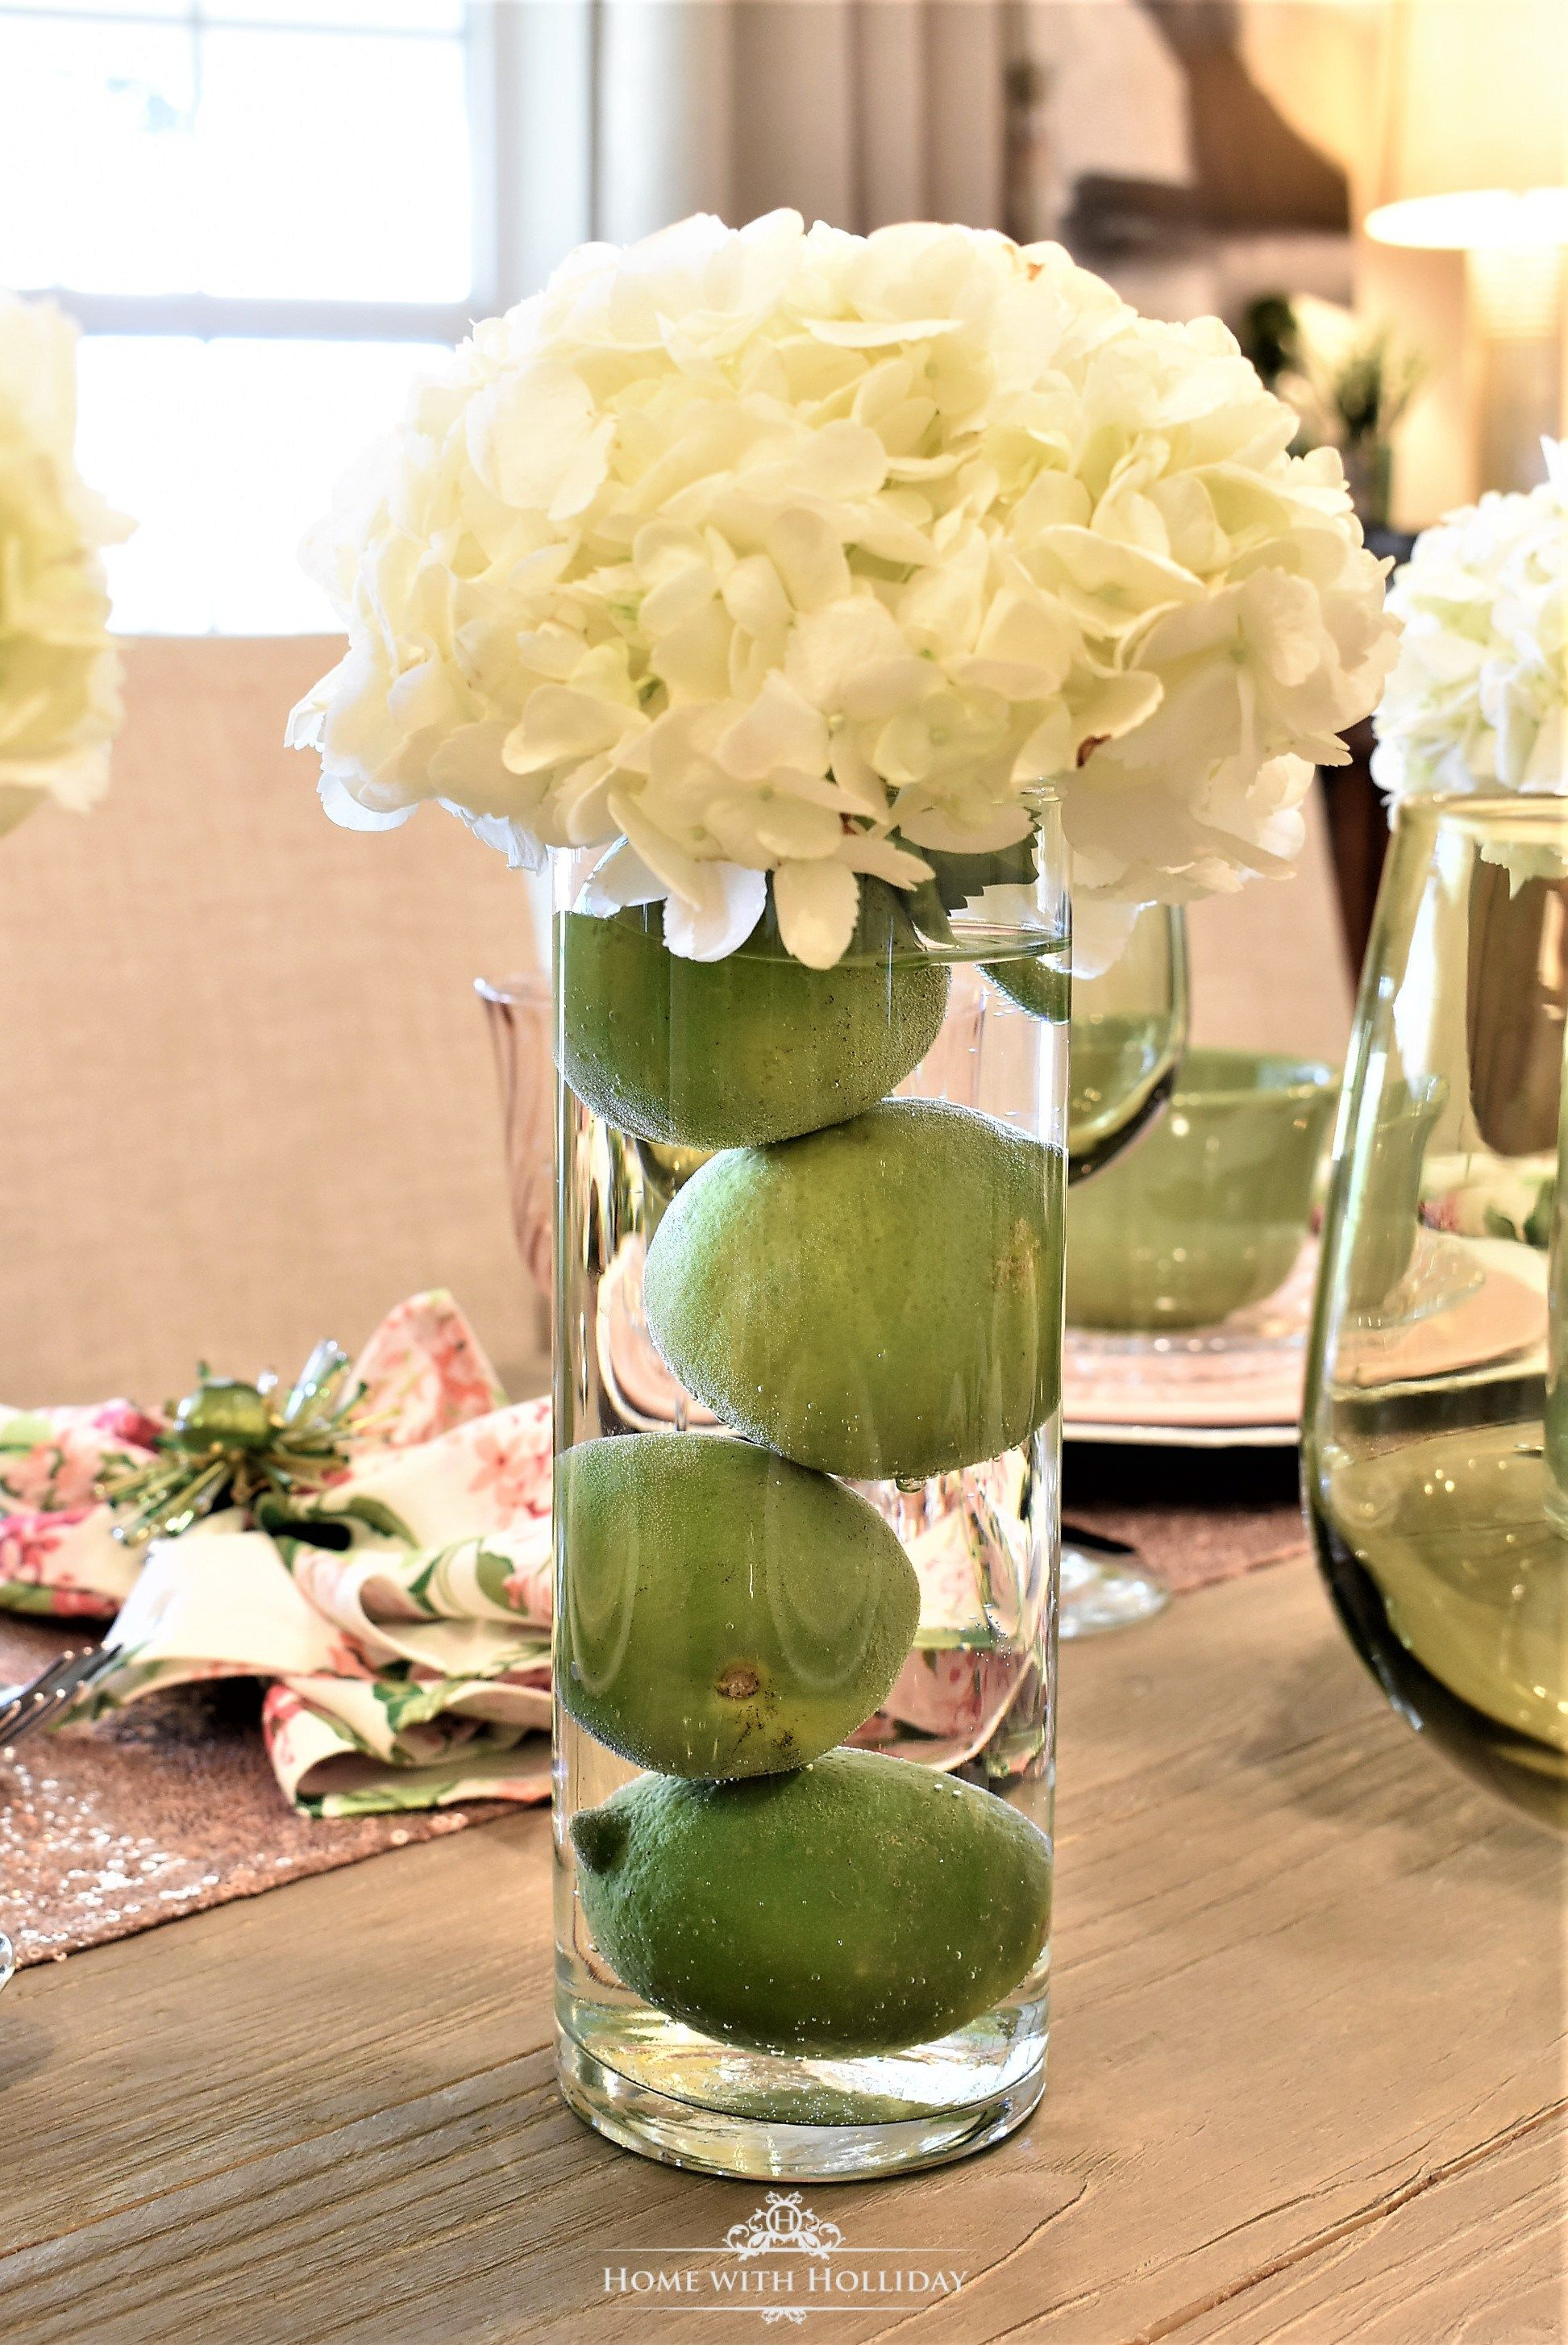 Easy Dramatic And Inexpensive Centerpiece With Limes And